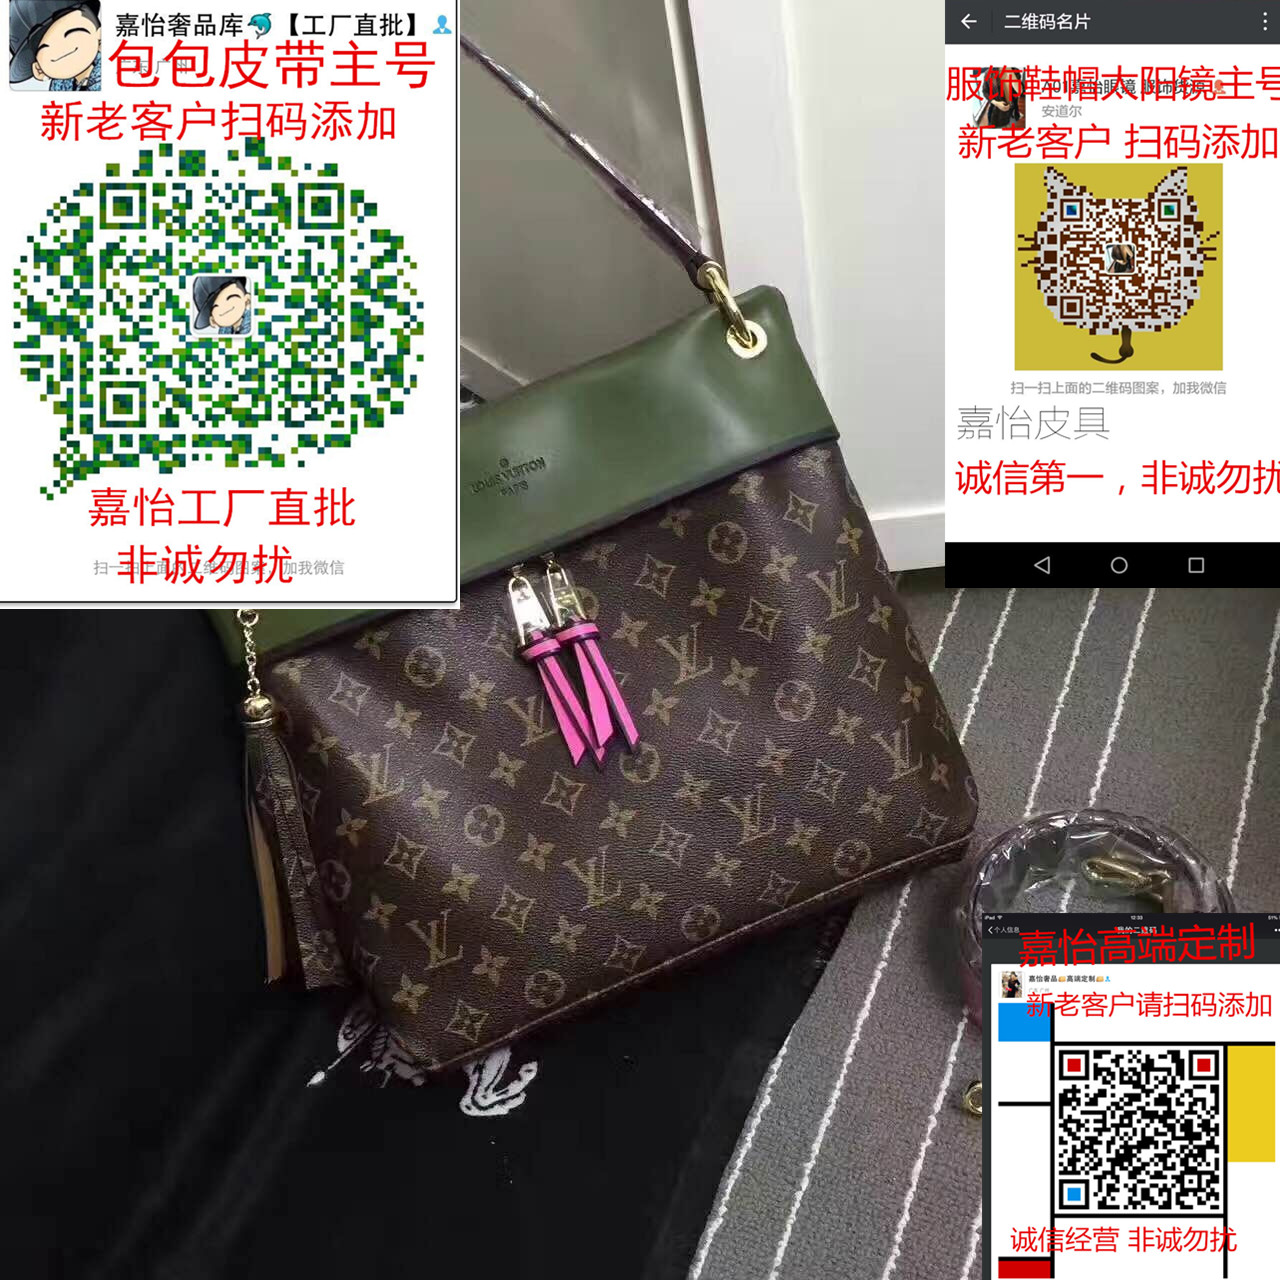 LV Chanel one by one bag shipping agent